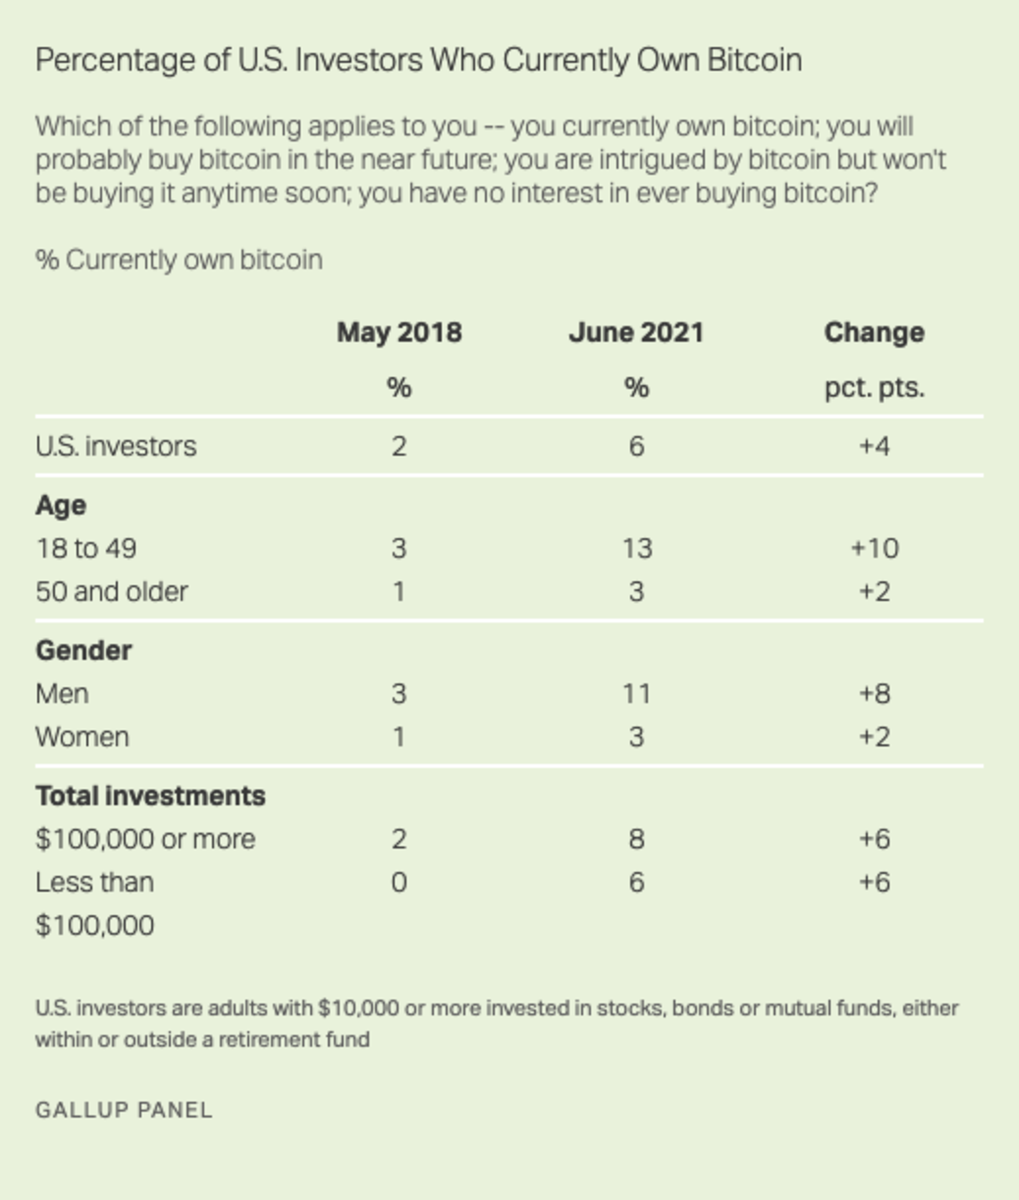 Percentage of U.S. investors who currently own bitcoin, compared to 2018. Source: Gallup